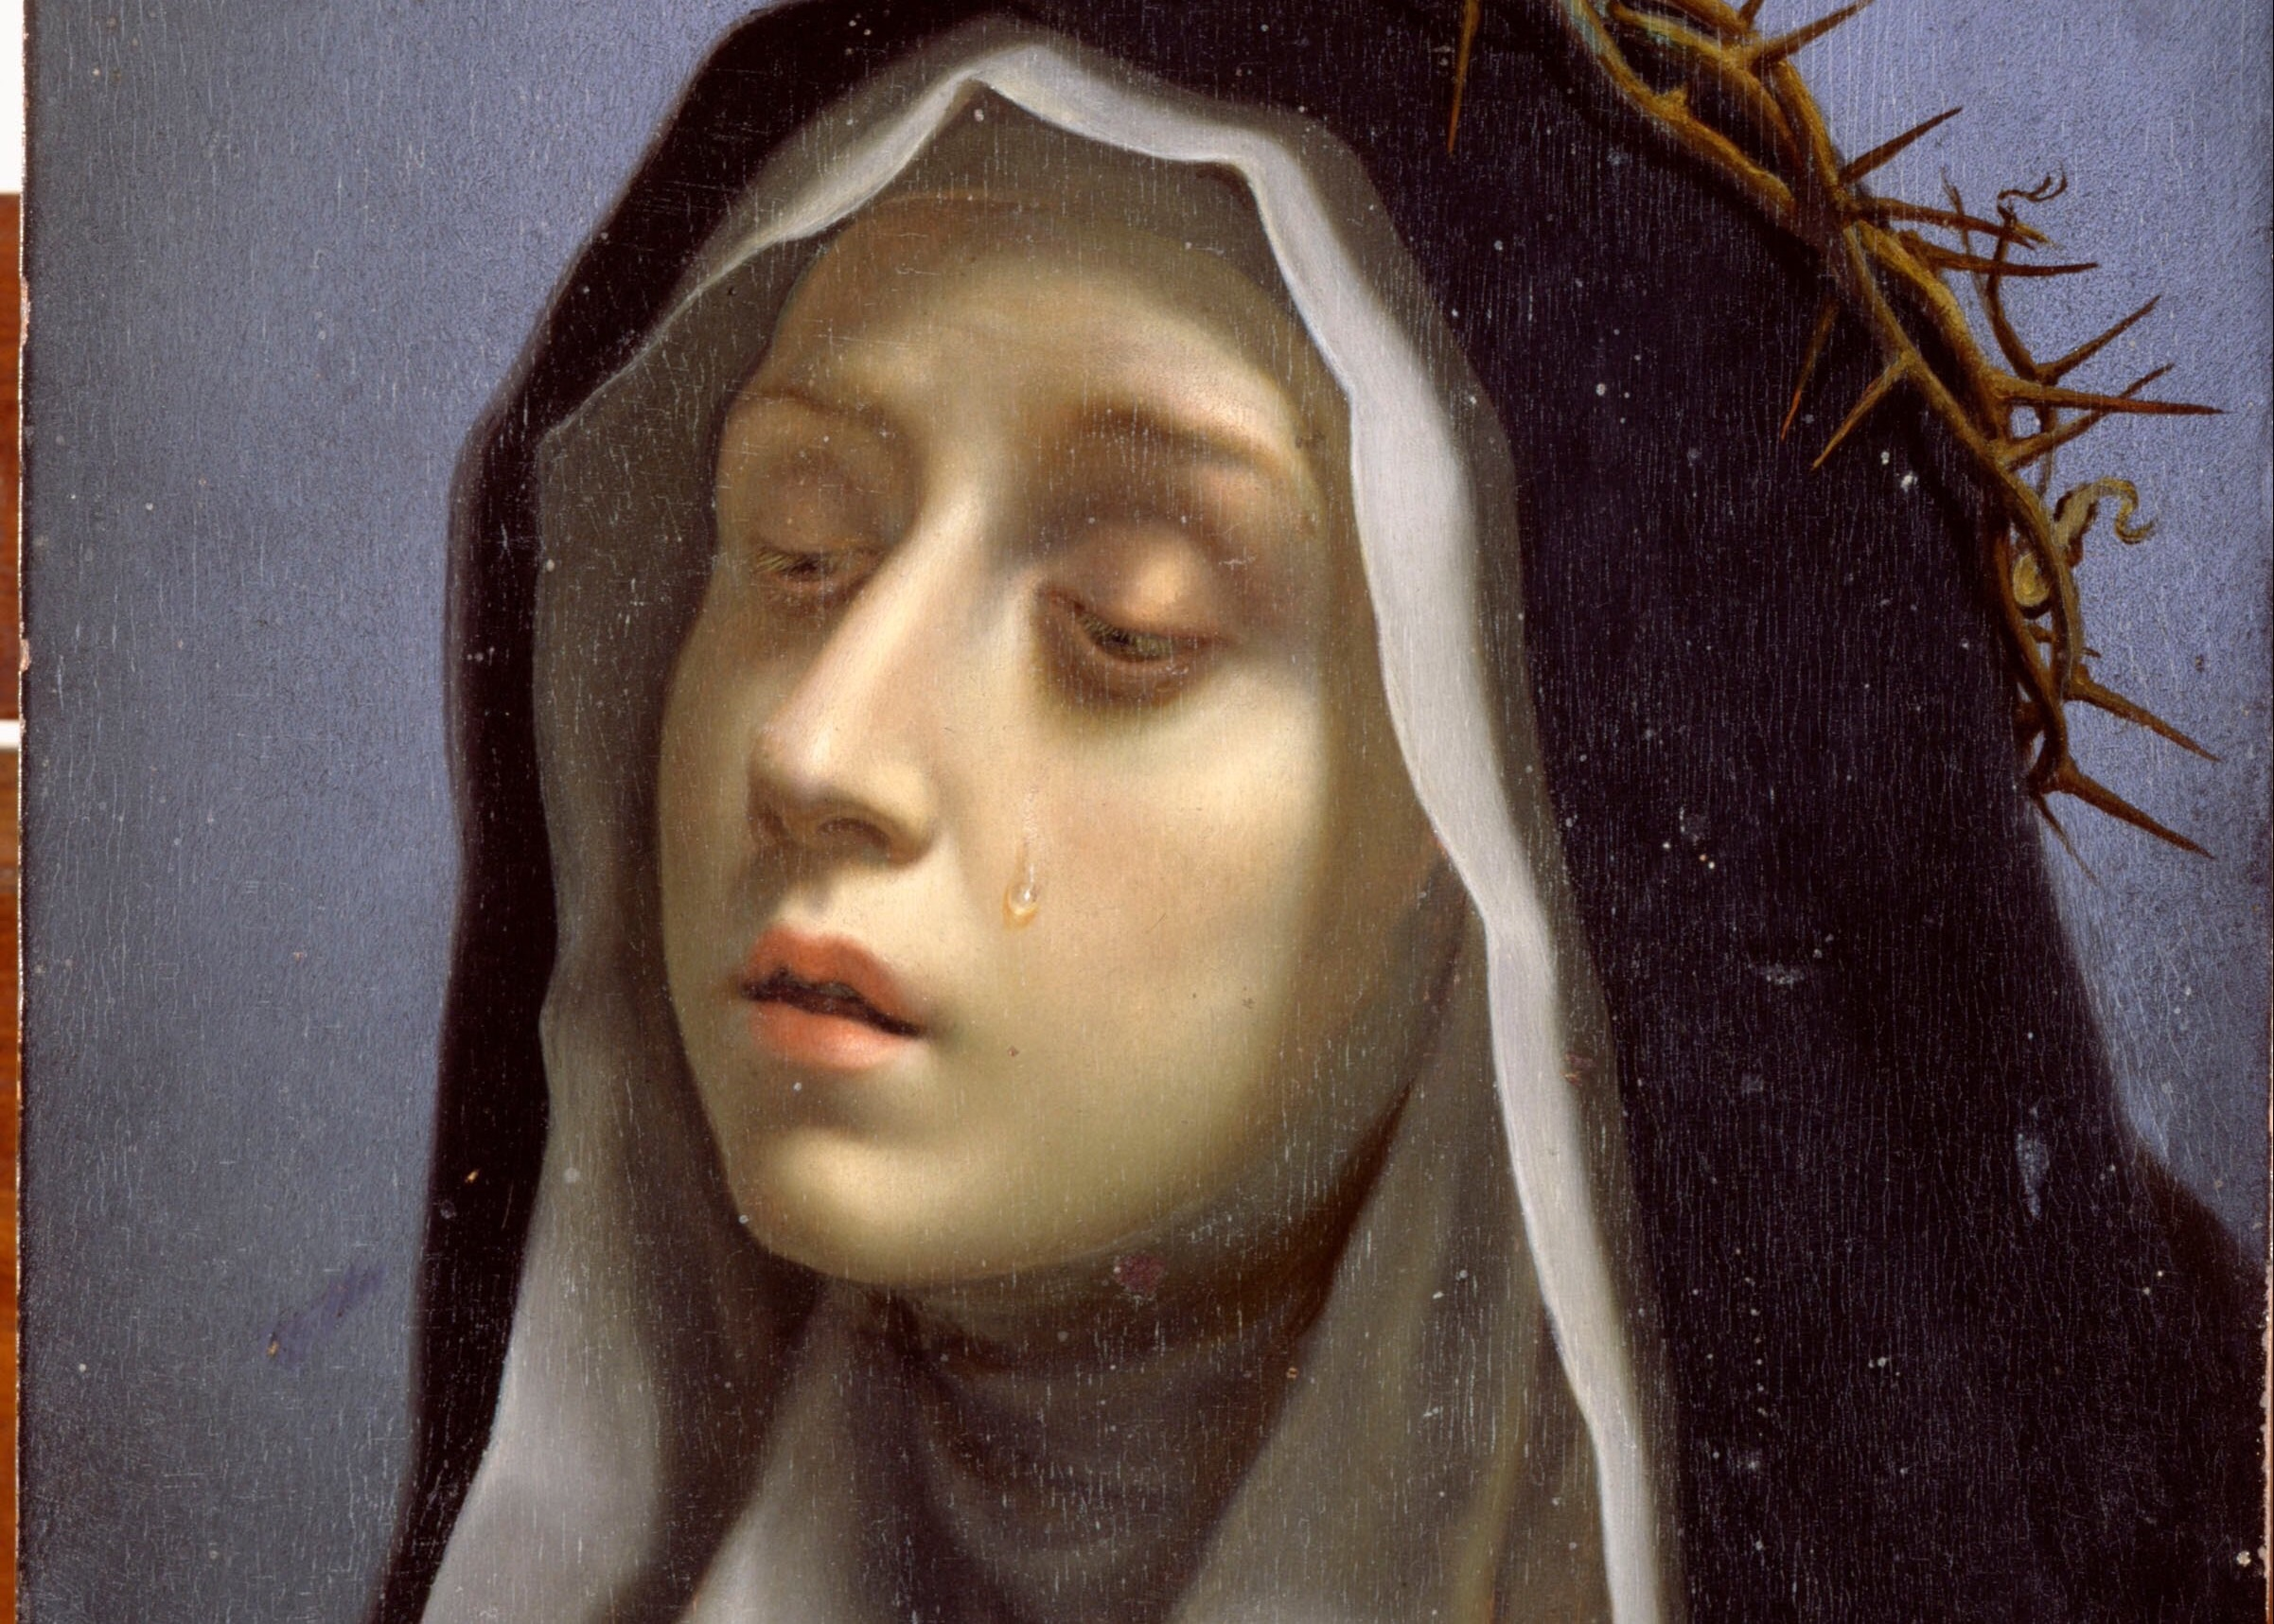 St. Catherine of Siena, by Guido Reni